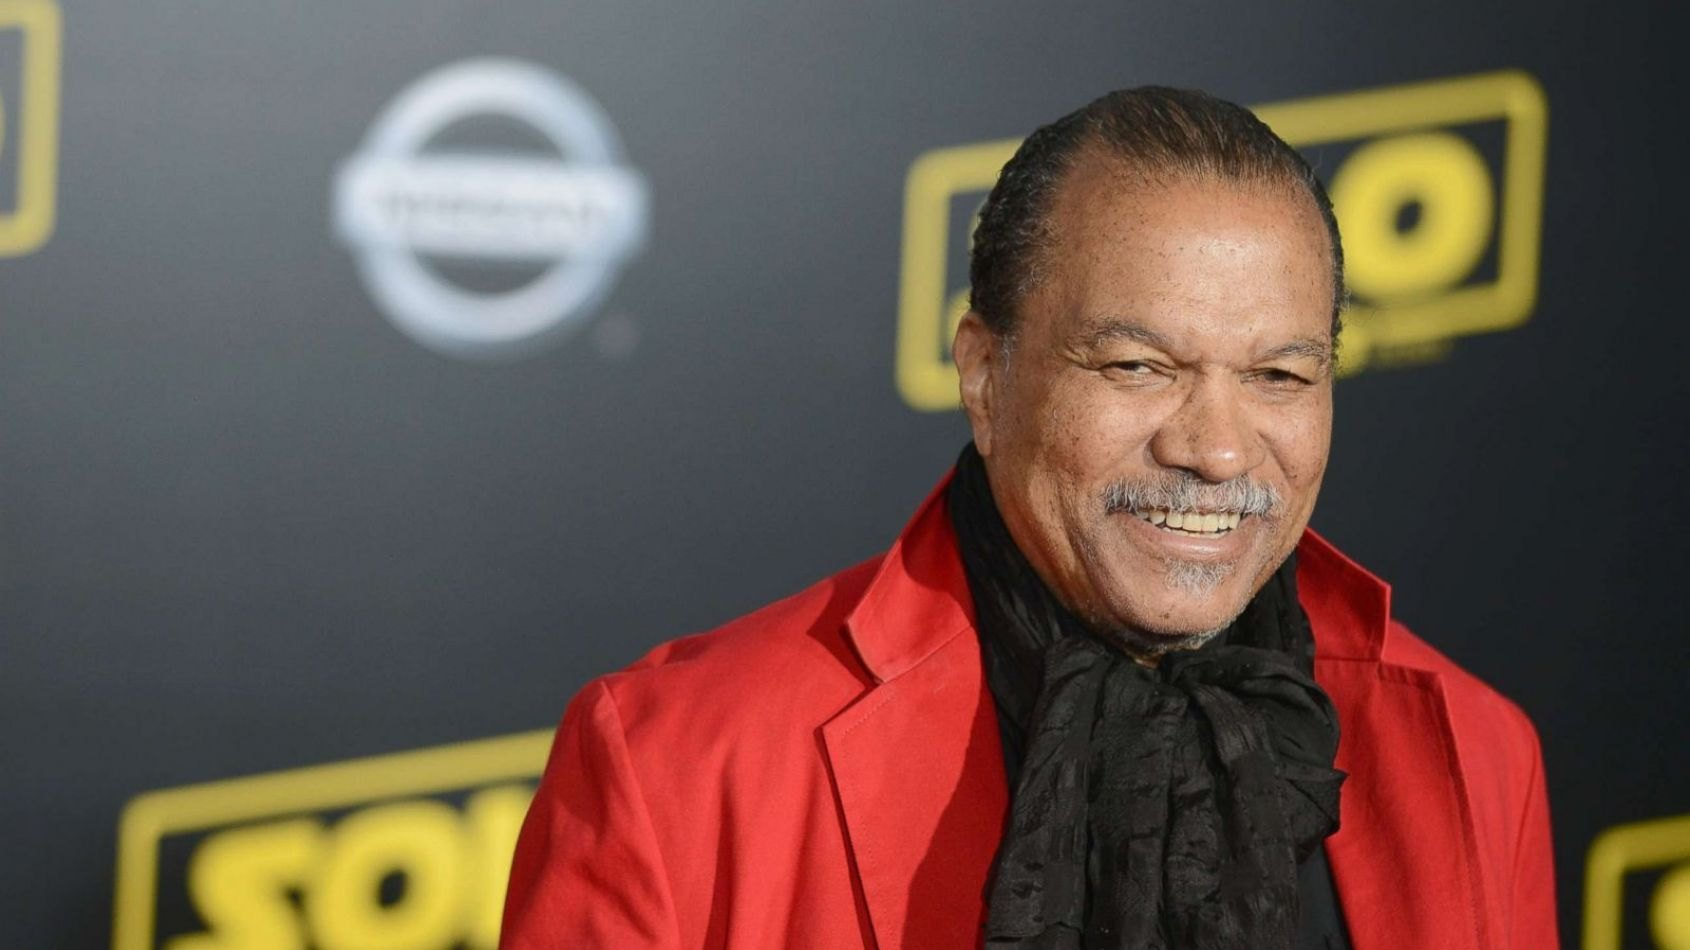 Billy Dee Williams sera t-il dans l'épisode IX ?